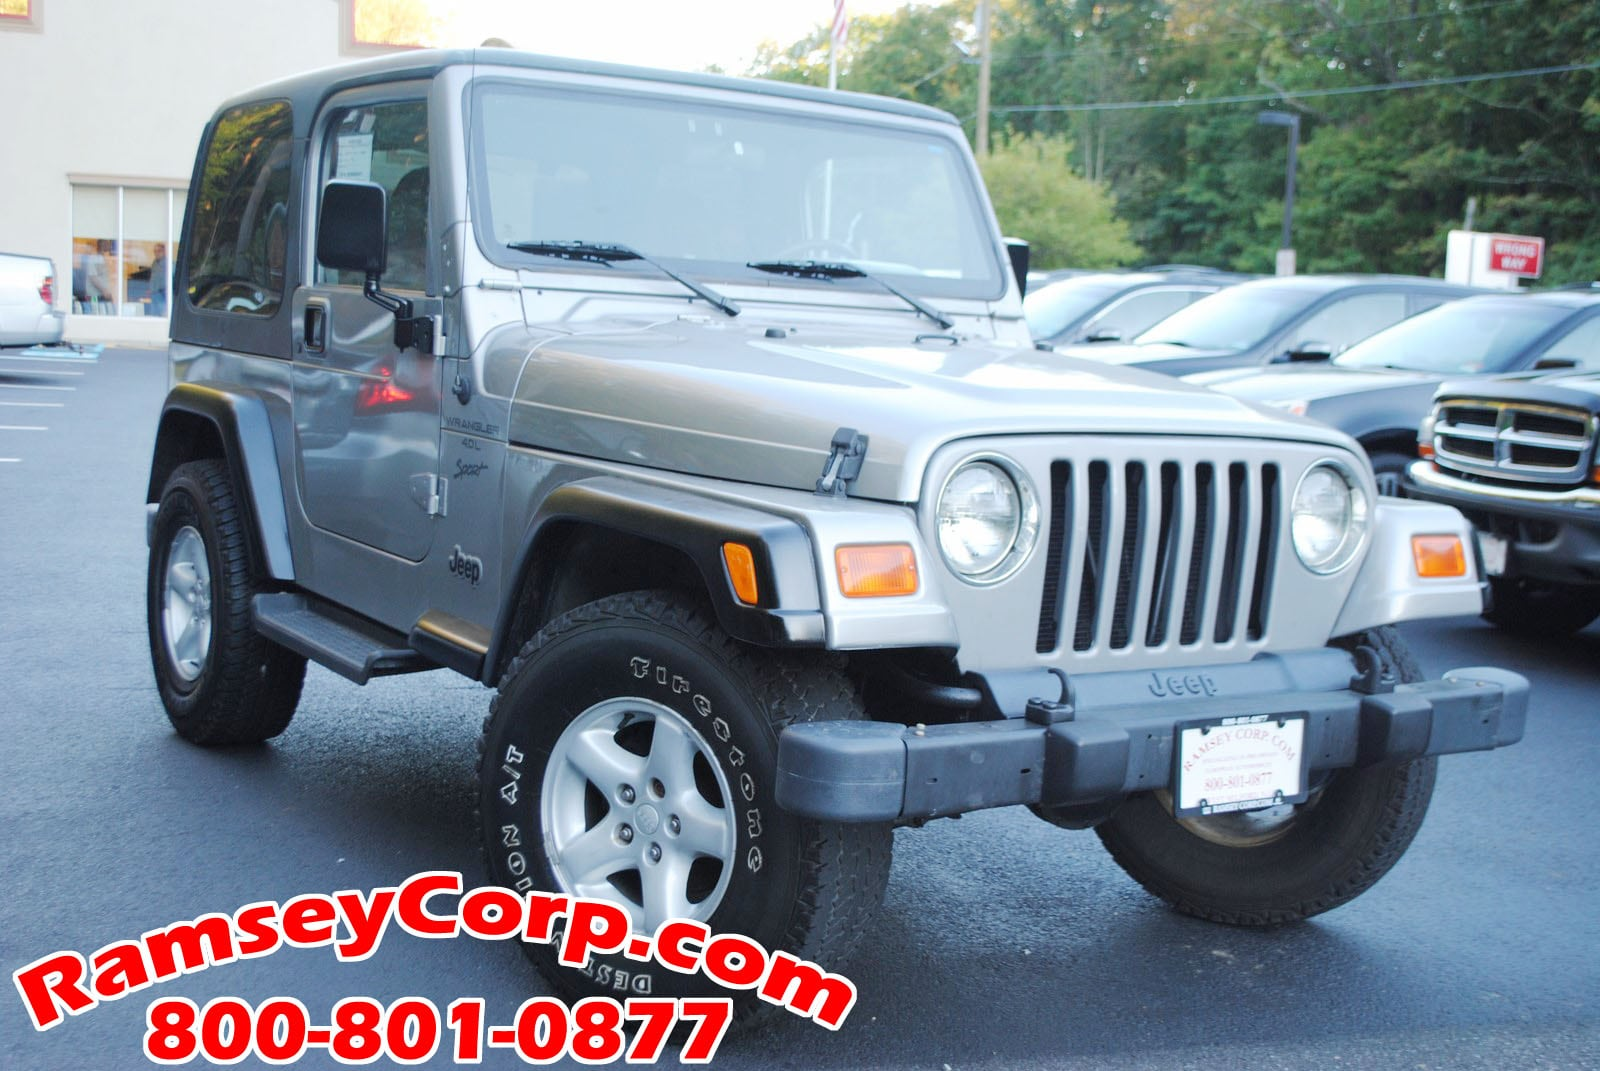 used 2000 jeep wrangler for sale west milford nj. Cars Review. Best American Auto & Cars Review